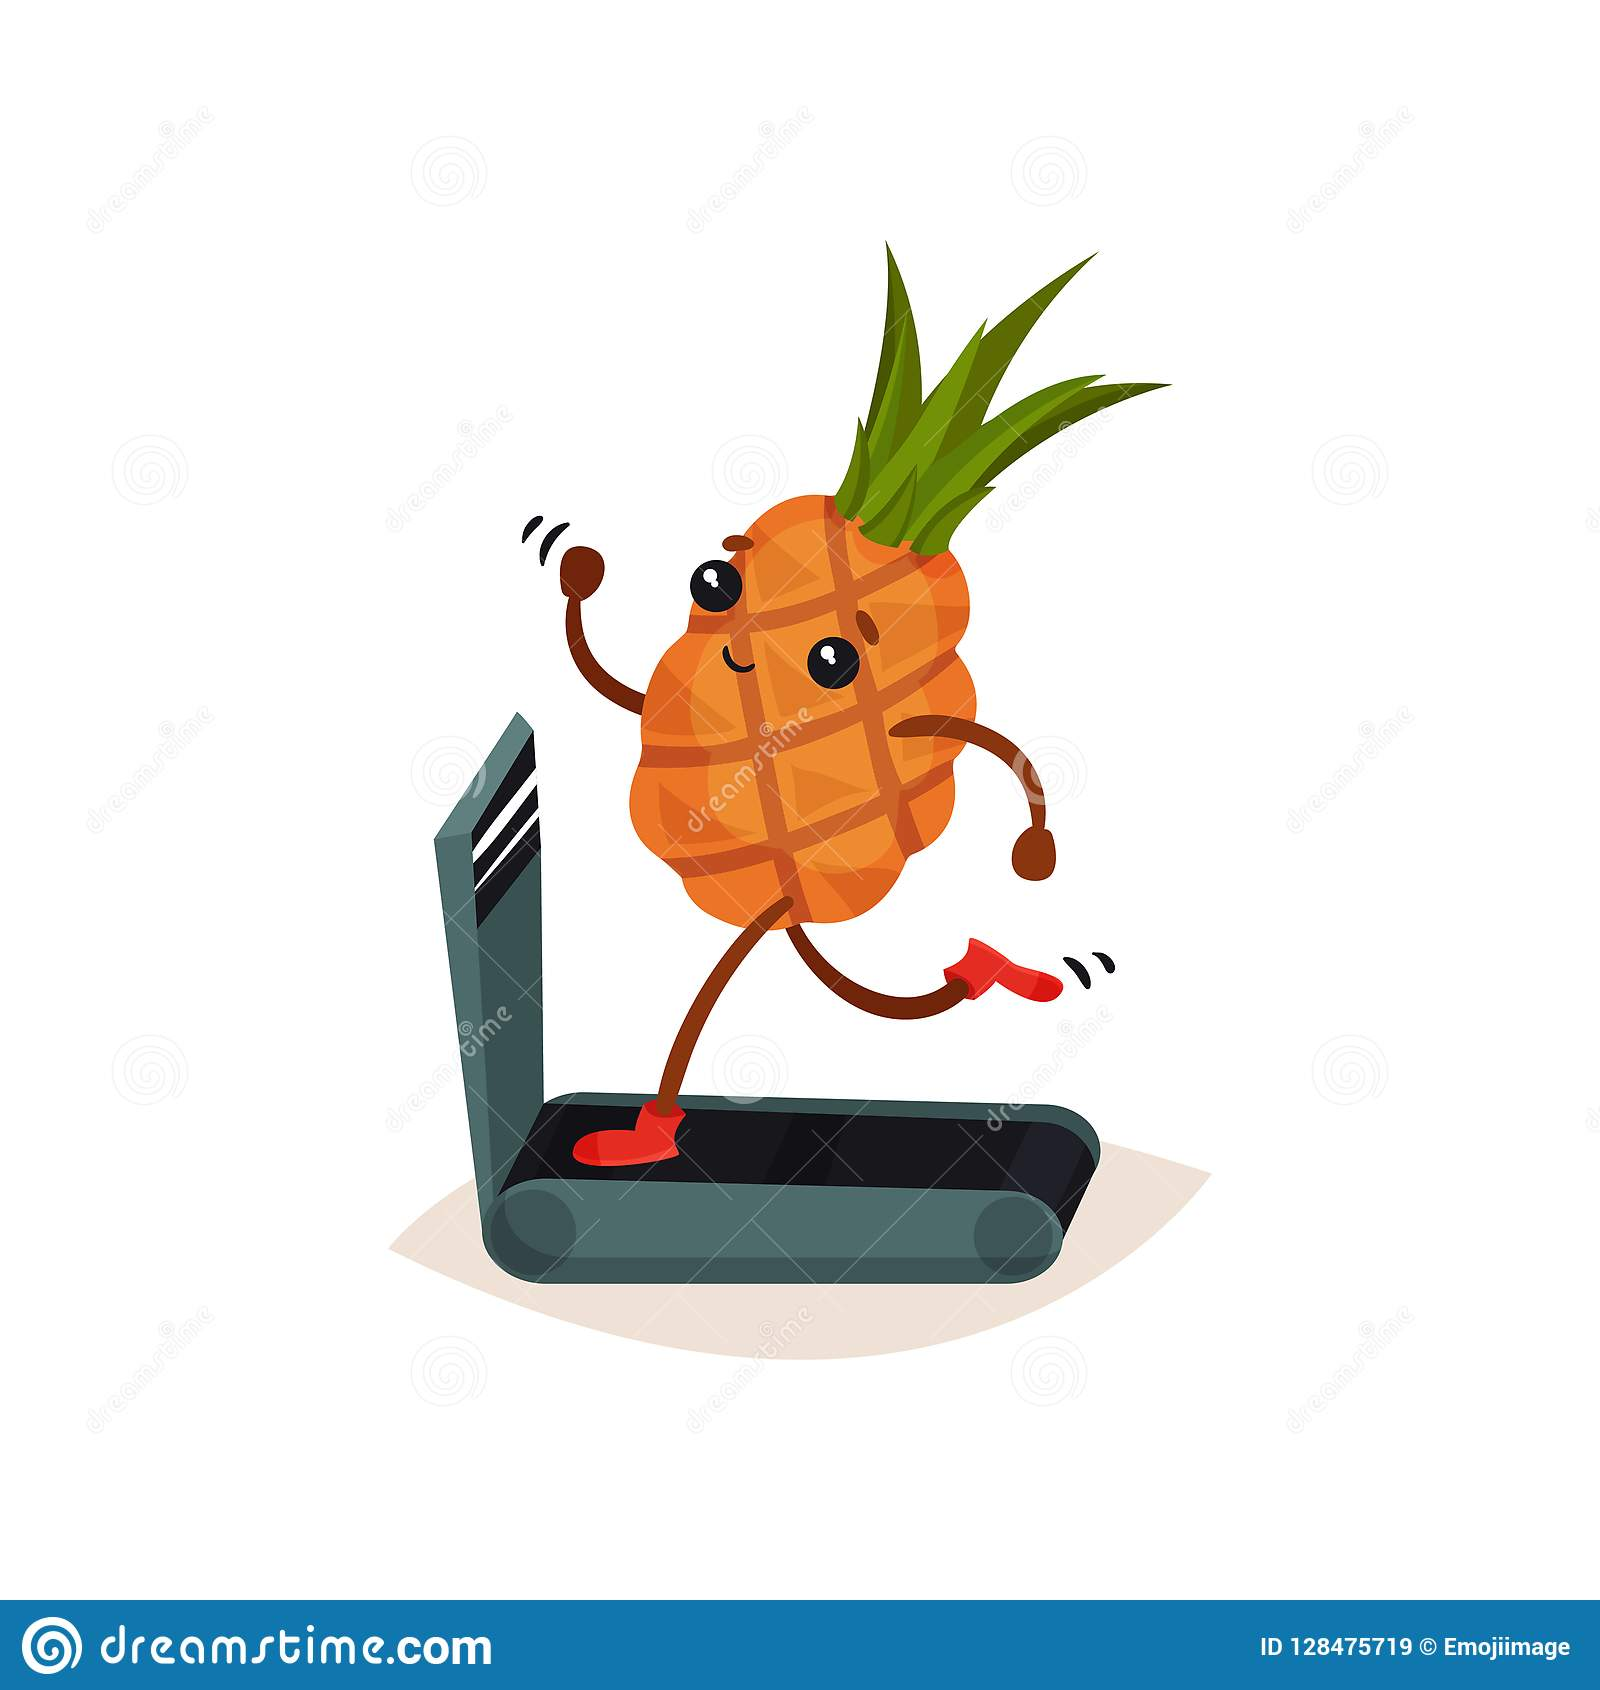 Funny humanized pineapple running on treadmill. Cartoon tropical fruit. Sport and physical activity theme. Flat vector